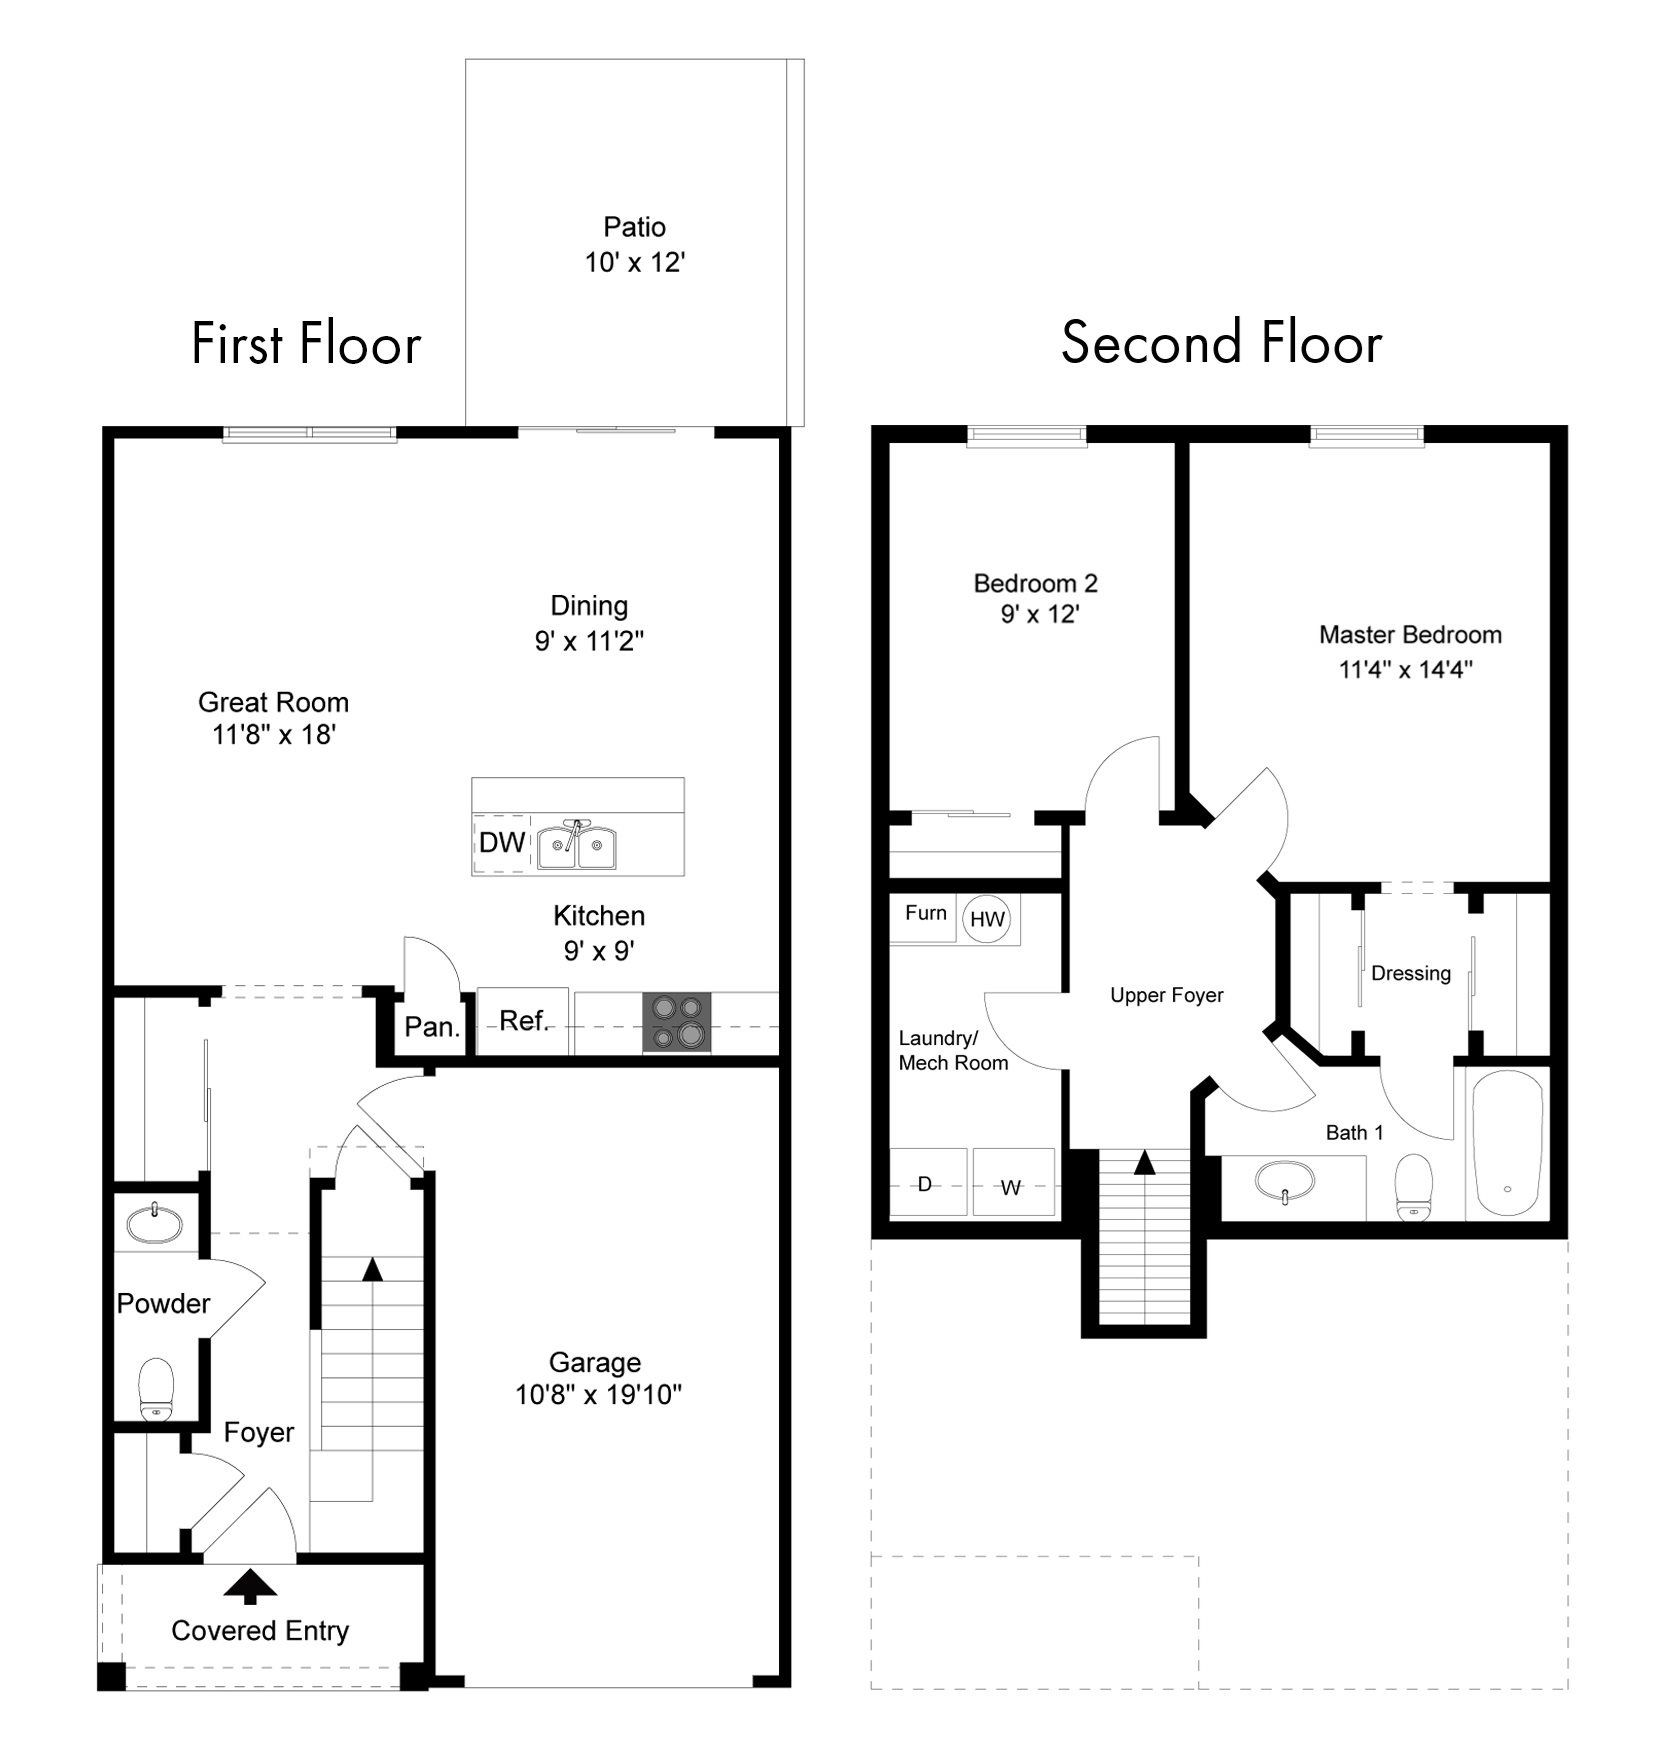 2 bedroom townhouse plan Google Search in 2020 How to